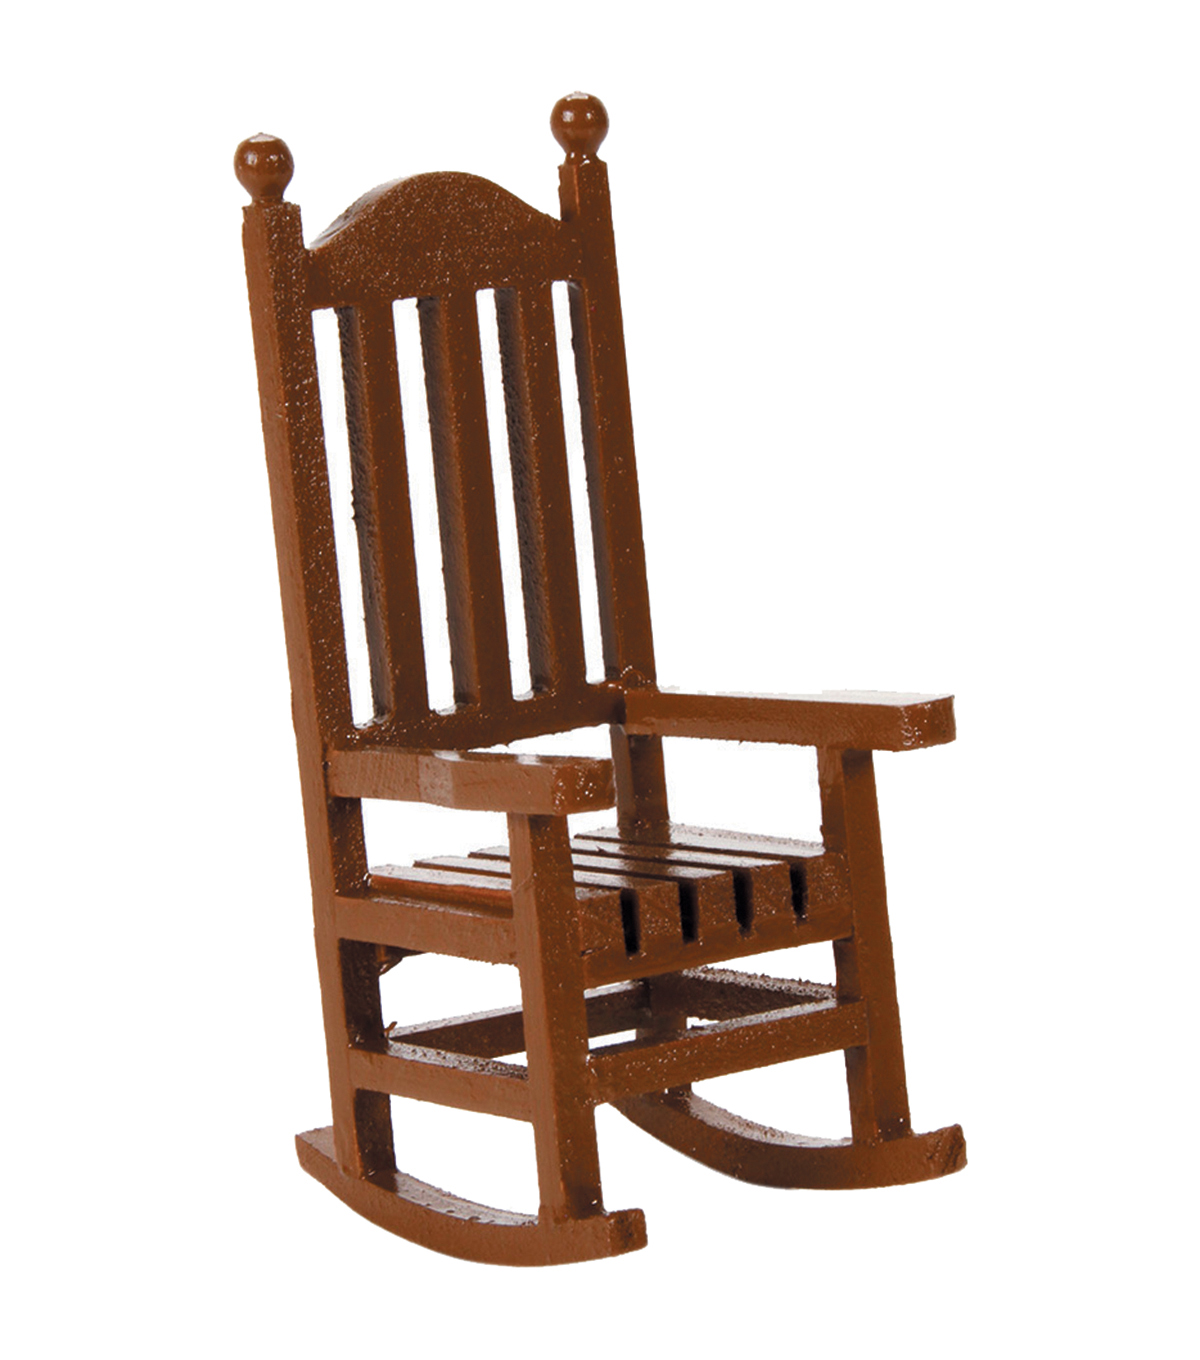 Best Place To Buy Rocking Chairs Timeless Miniatures Wood Rocking Chair